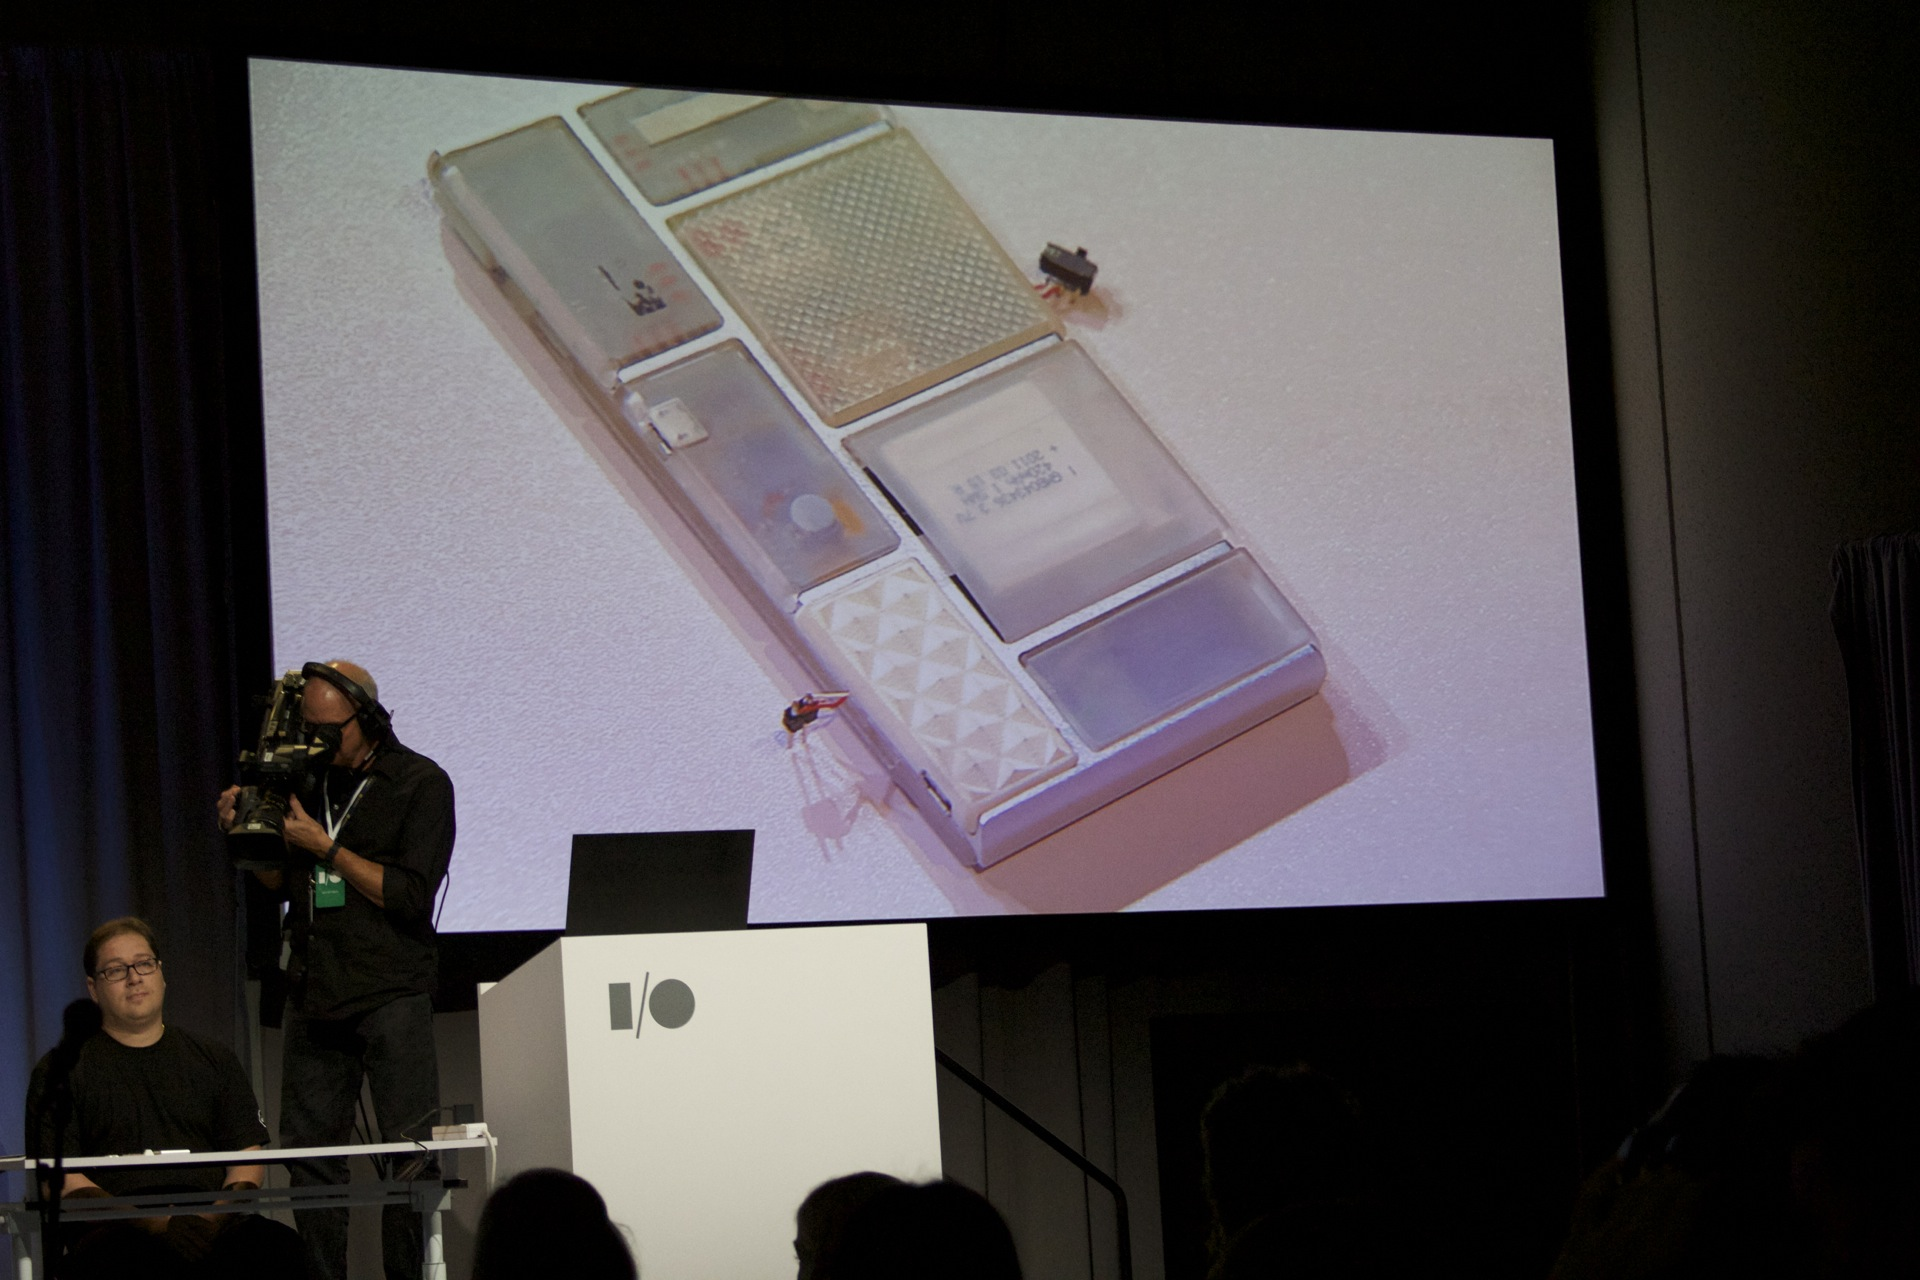 The Ara phone was emphatically a prototype—no shiny concept renders here.